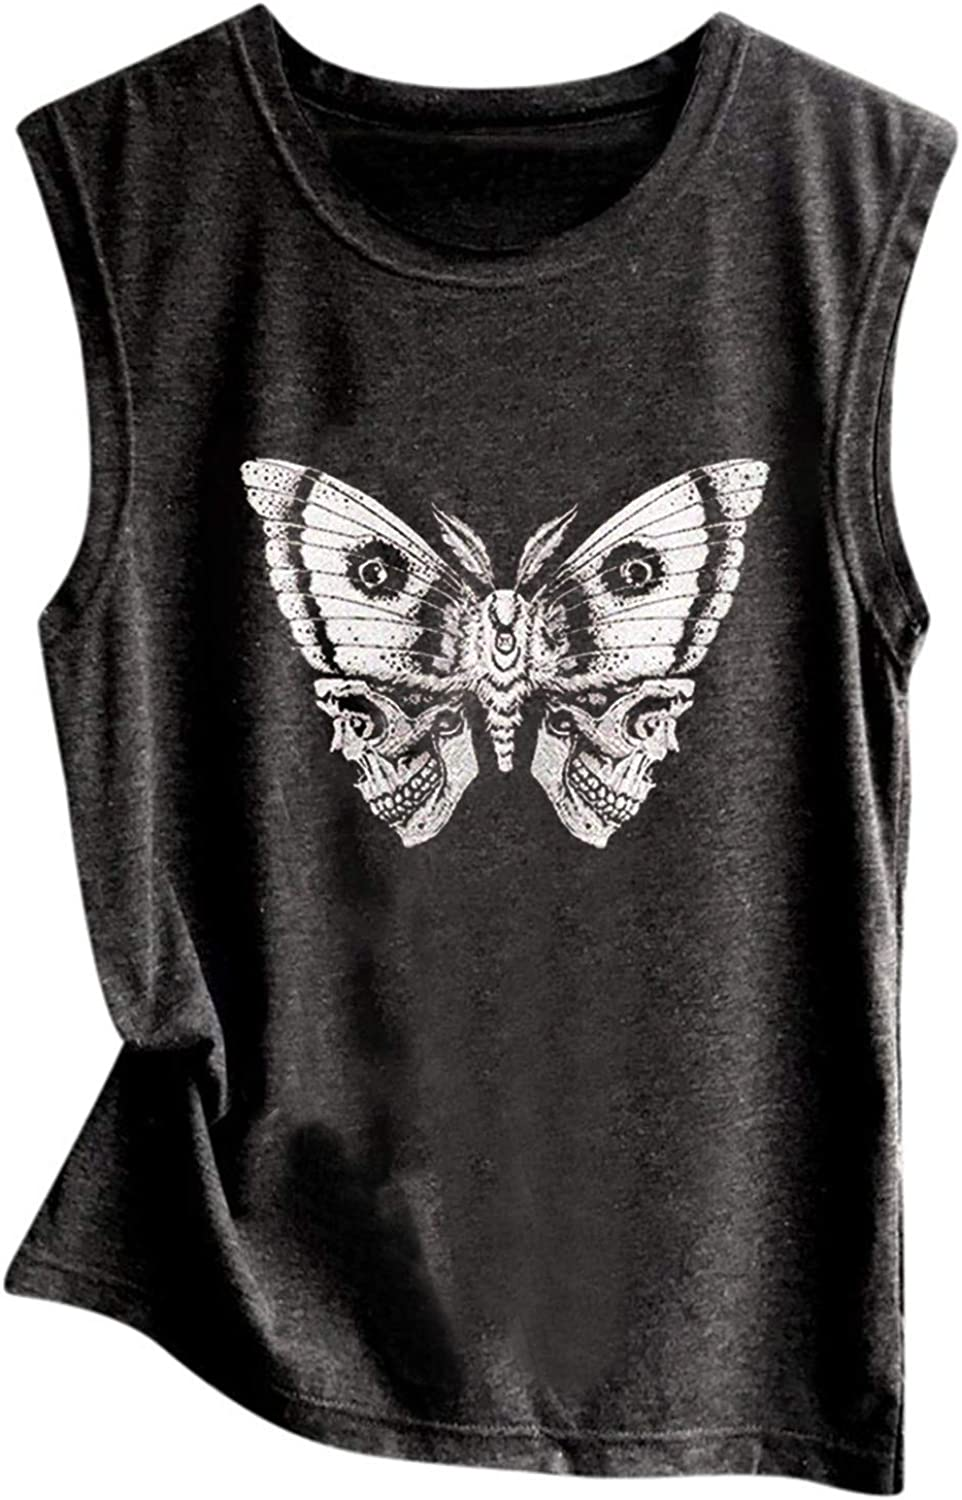 ORT Womens Tank Top, Vintage Tees Rose/Lion/Skull Print Sleeveless Loose Fit T-Shirts Casual Summer Beach Workout Blouses